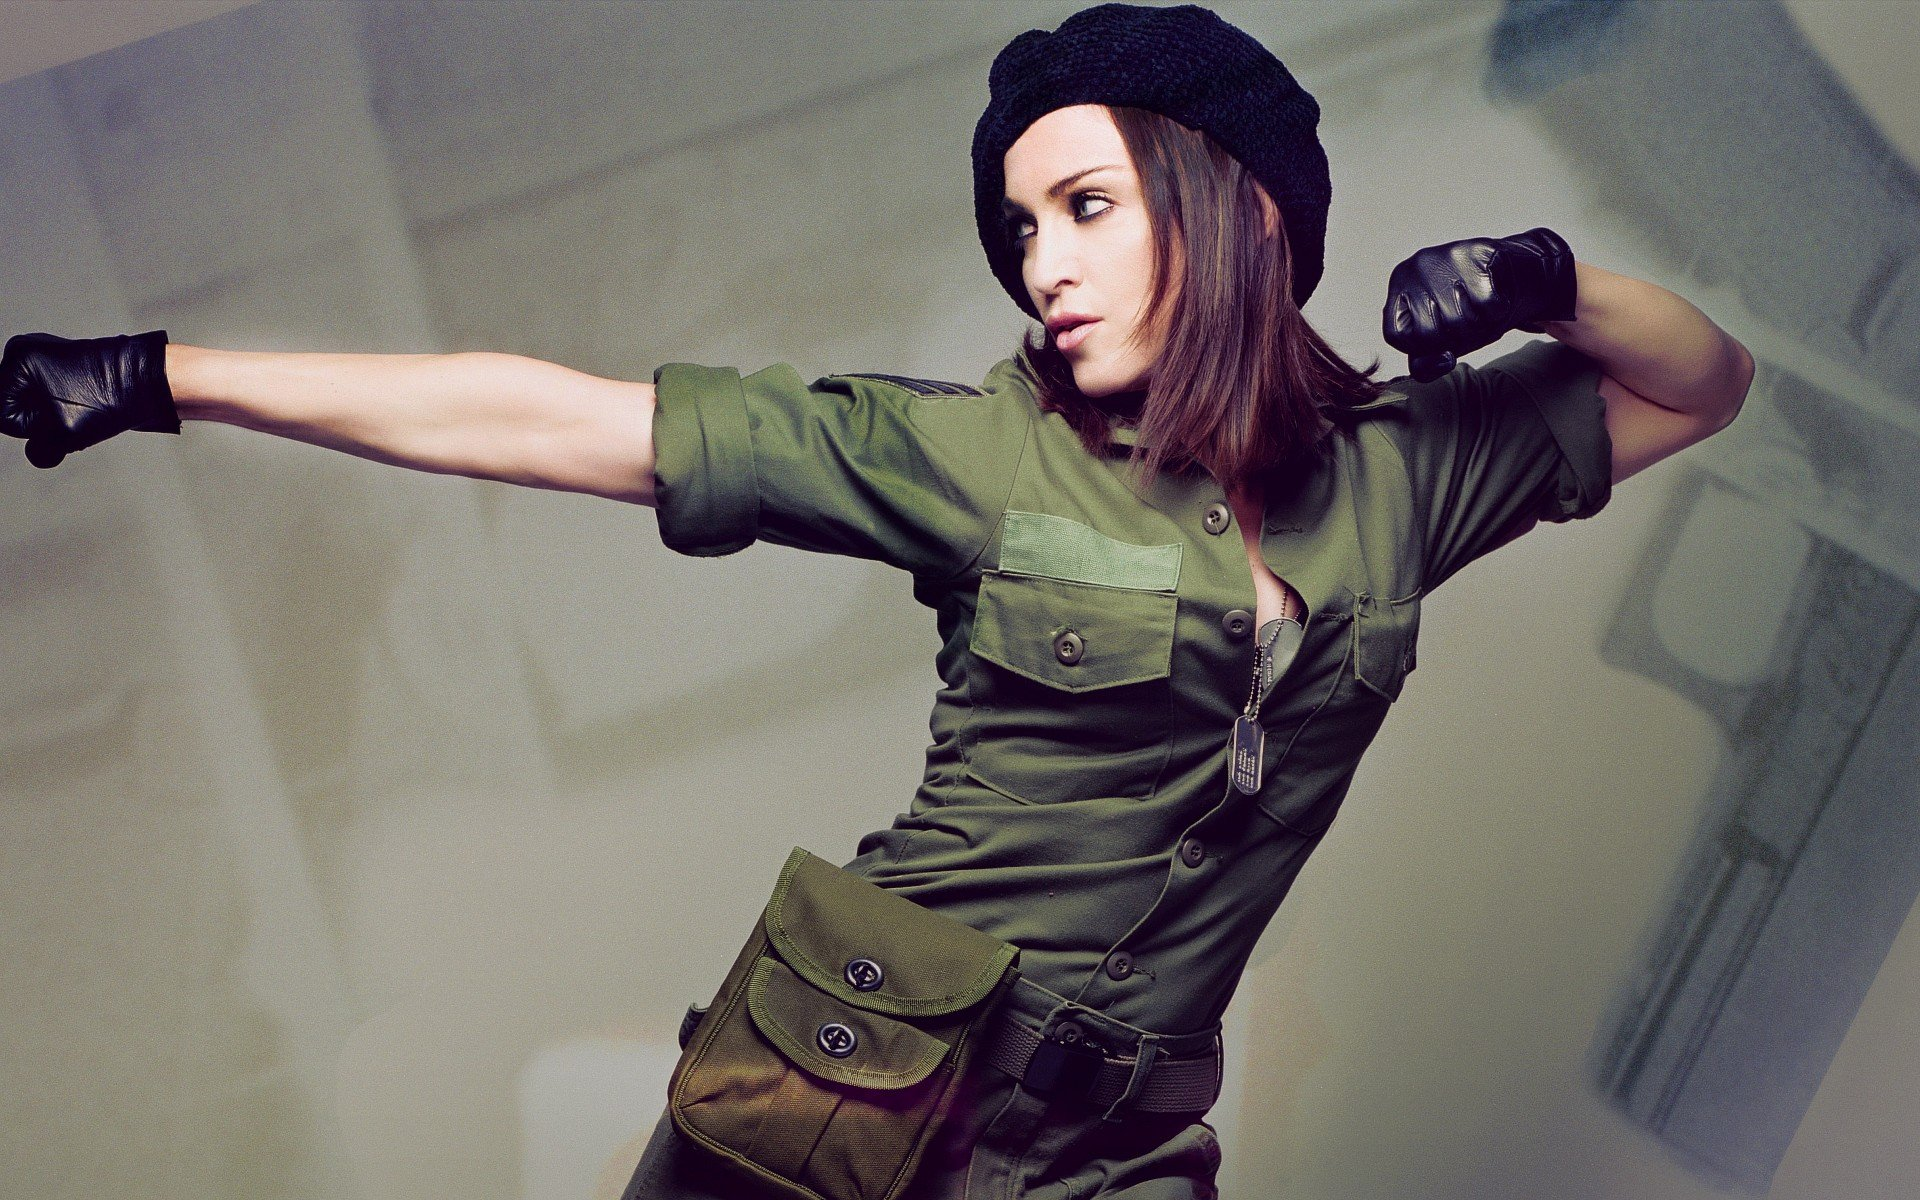 Wallpapers :: women, gloves, Madonna, singers, dog tags, military ...